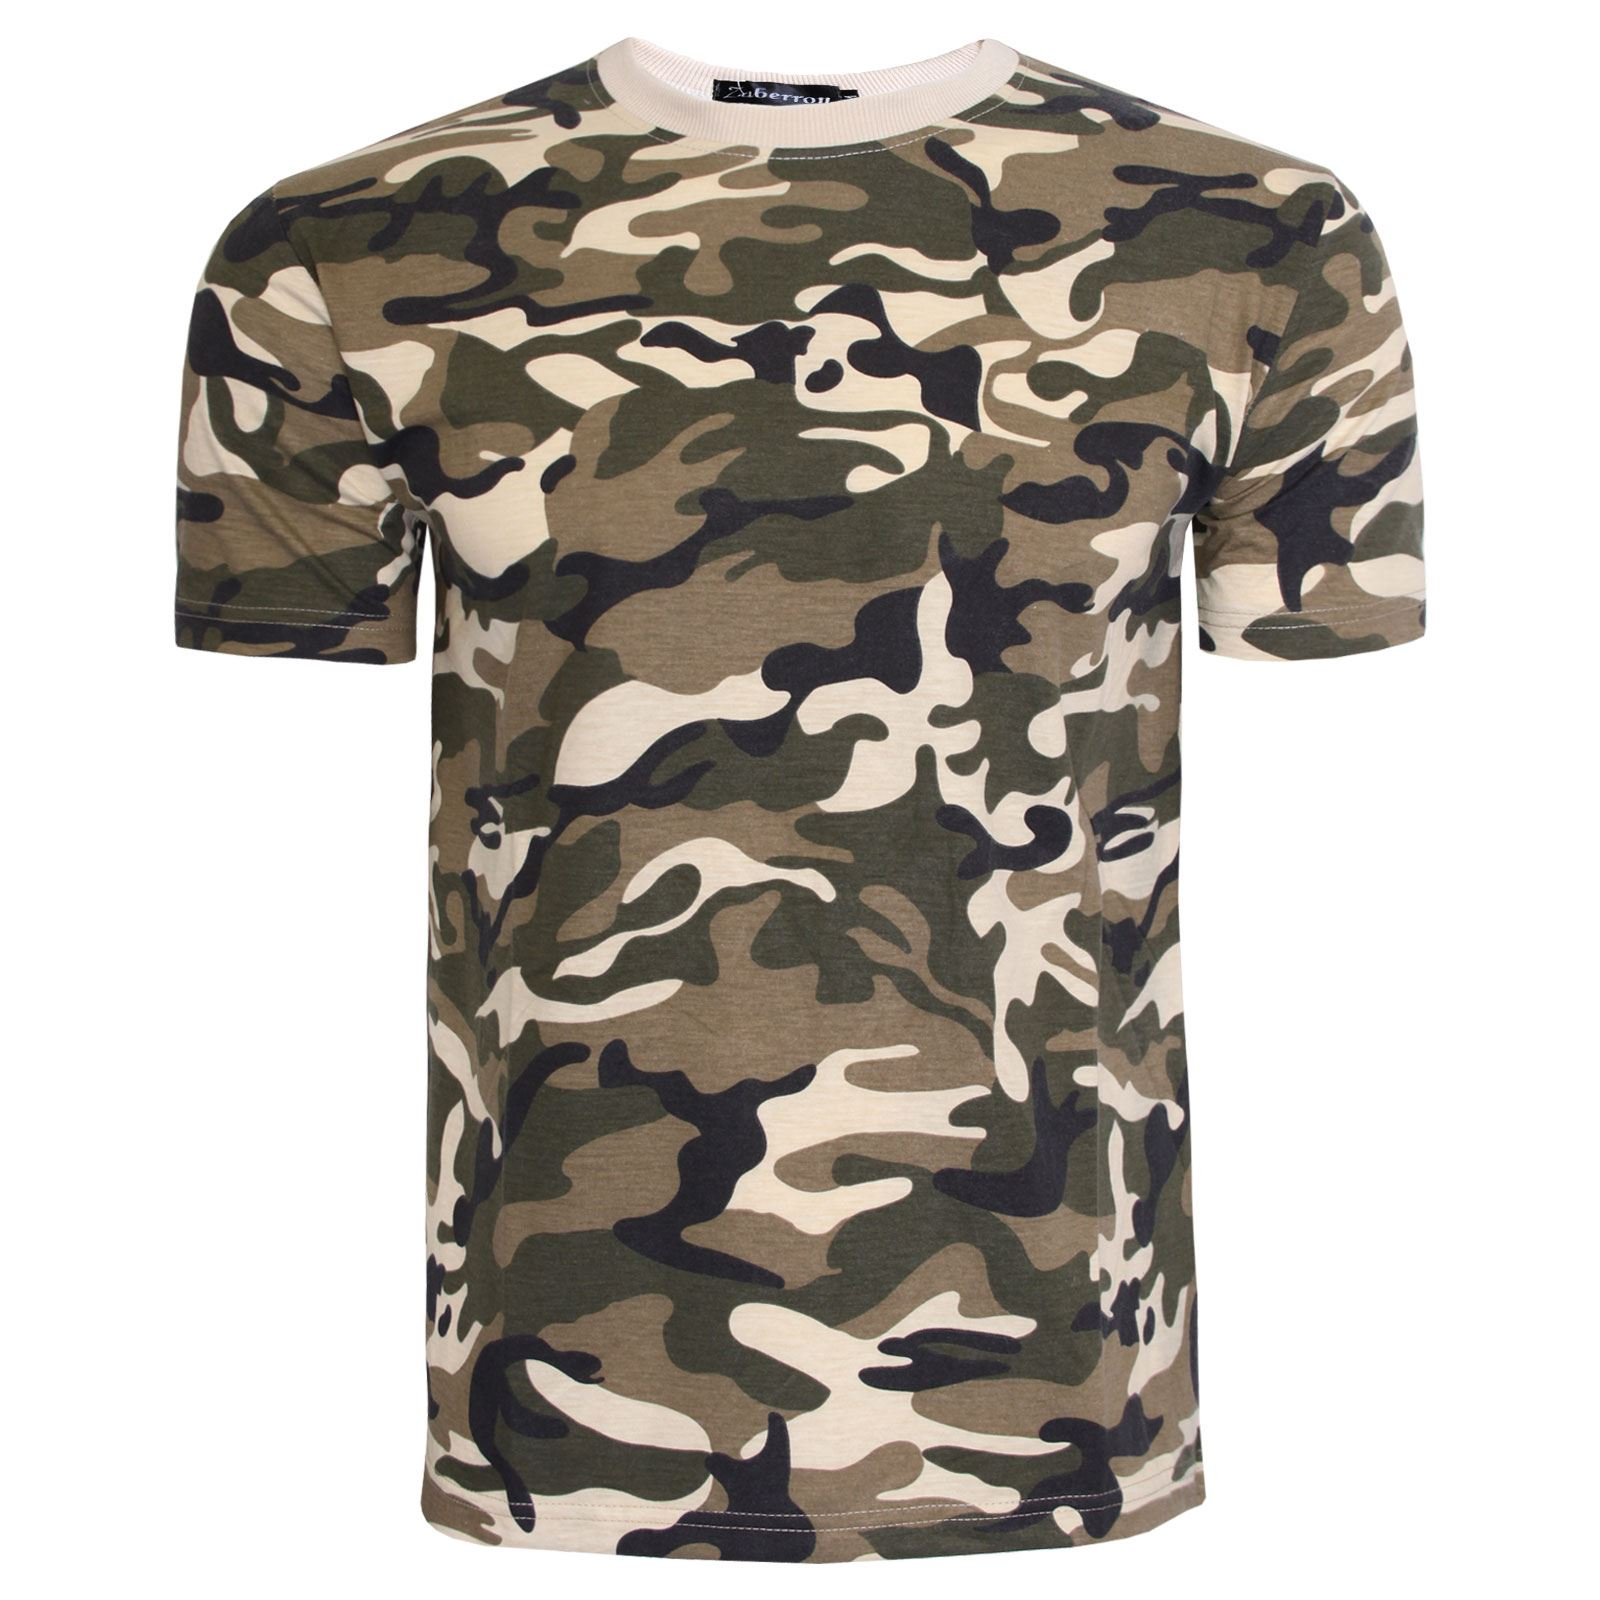 Find great deals on eBay for boys military shirt. Shop with confidence.